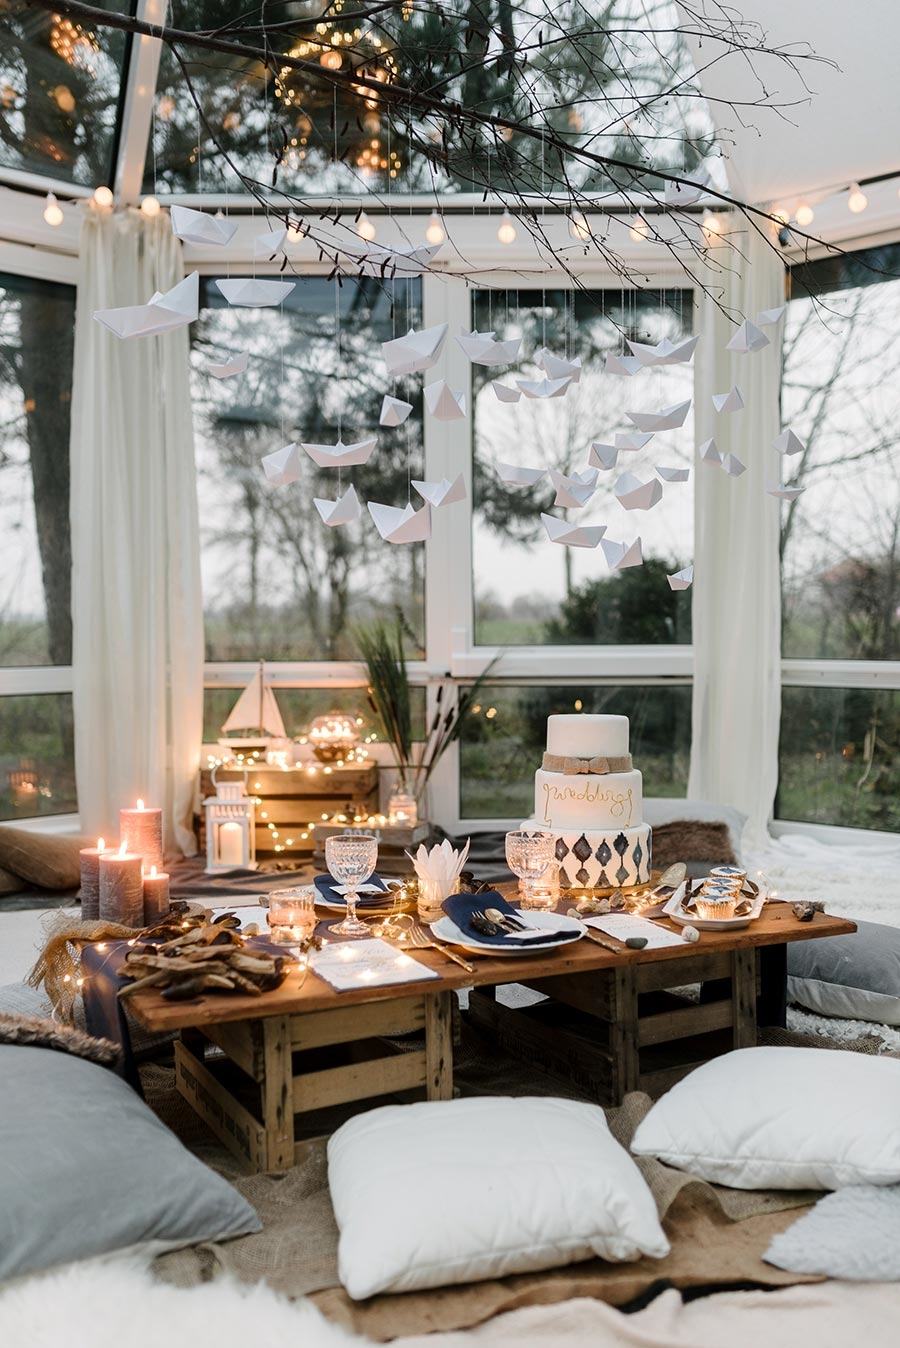 Life Syled: Hygge  Image courtesy Lonny